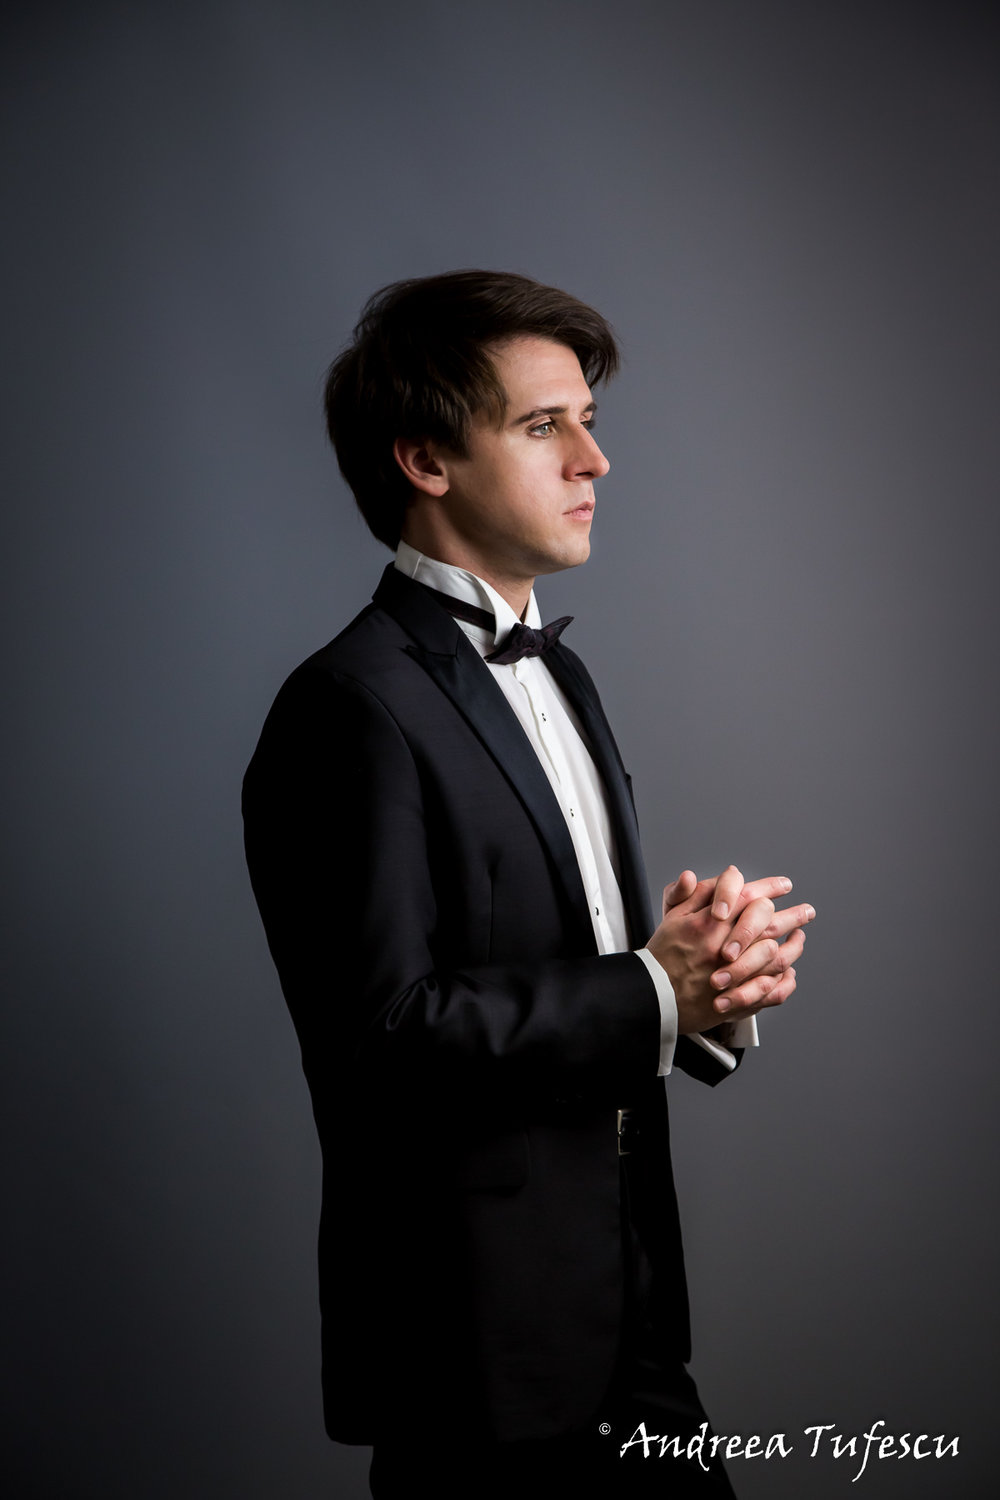 Pianist Vitaly Pisarenko - portraits and headshots by London photographer Andreea Tufescu